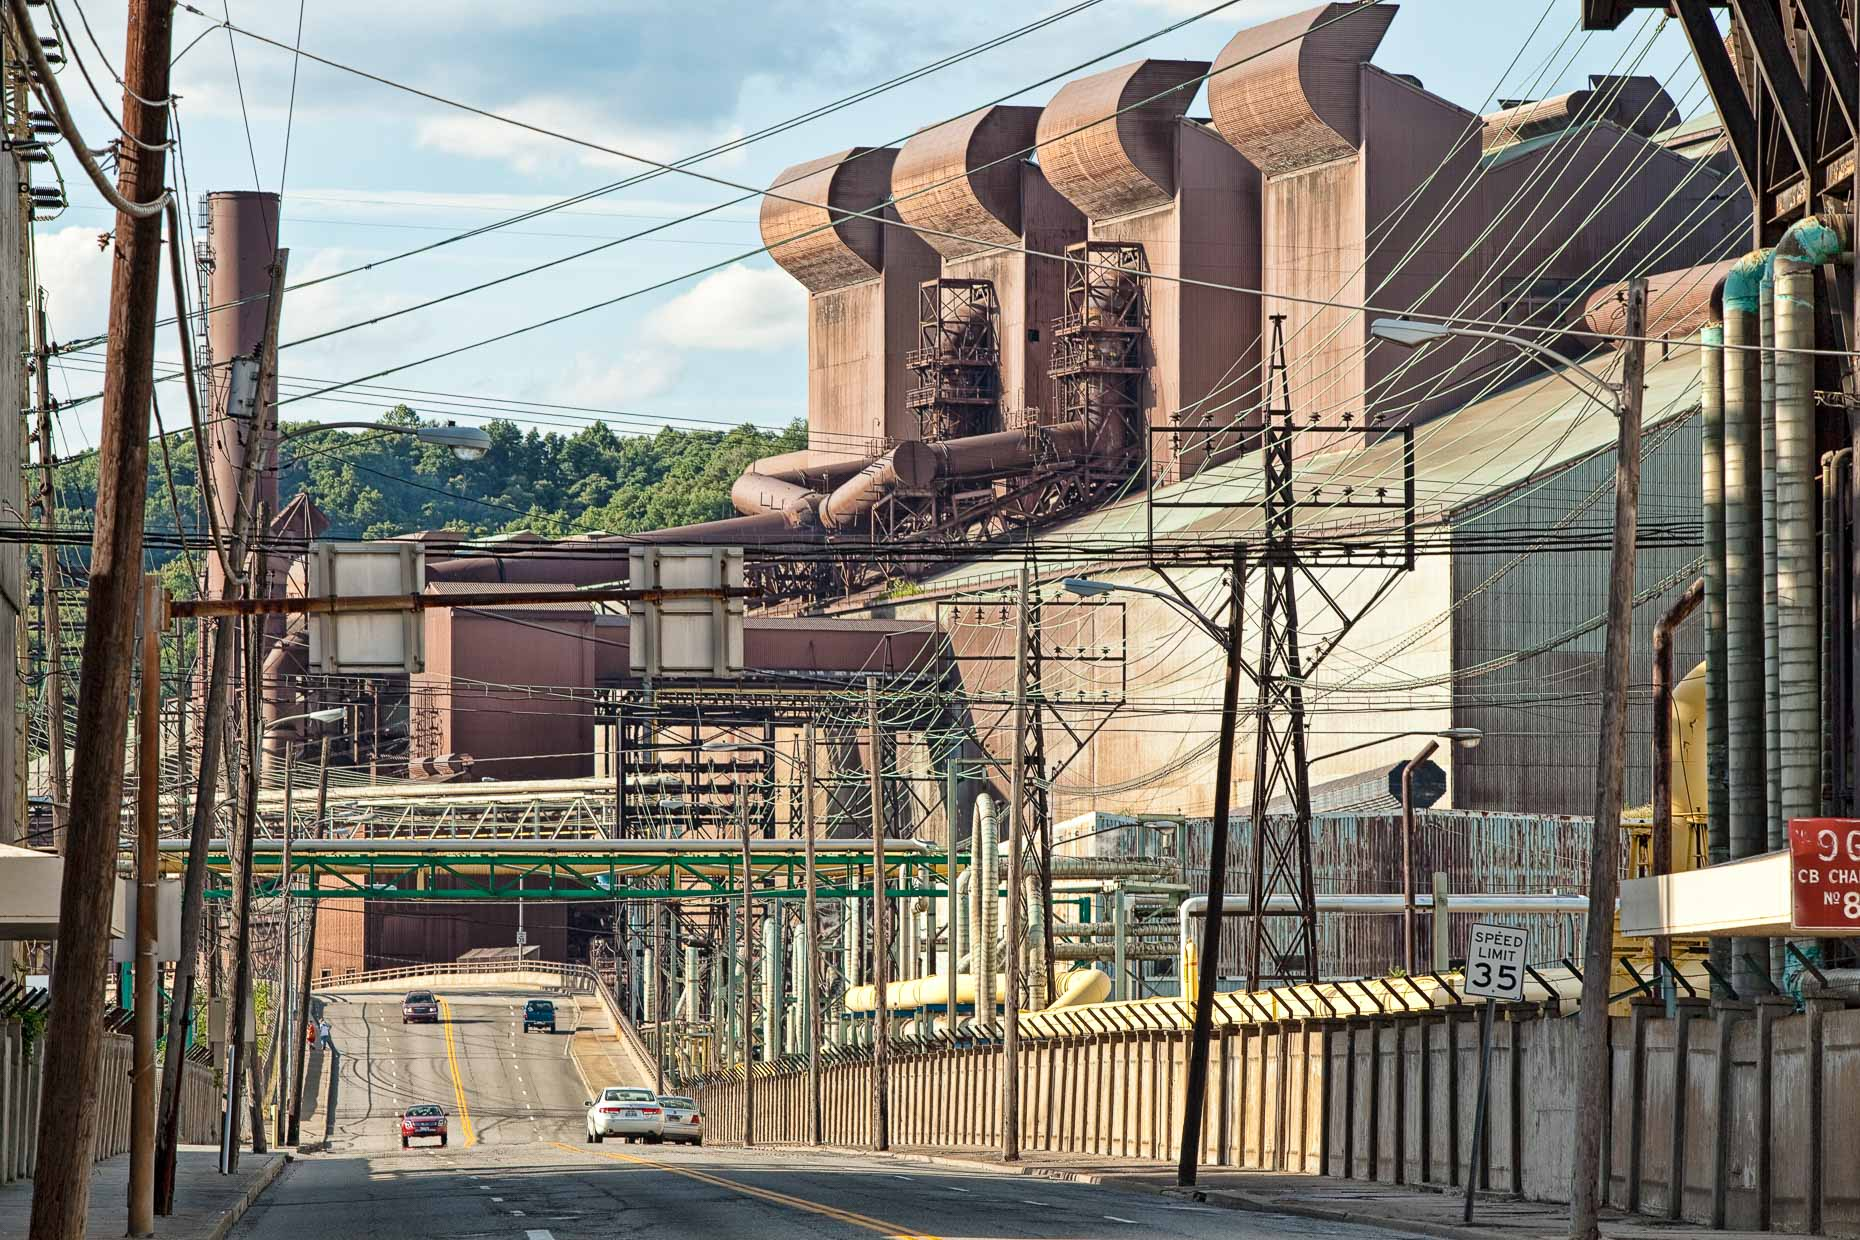 Steel plant factory with street in Weirton, West Virginia by David Zaitz